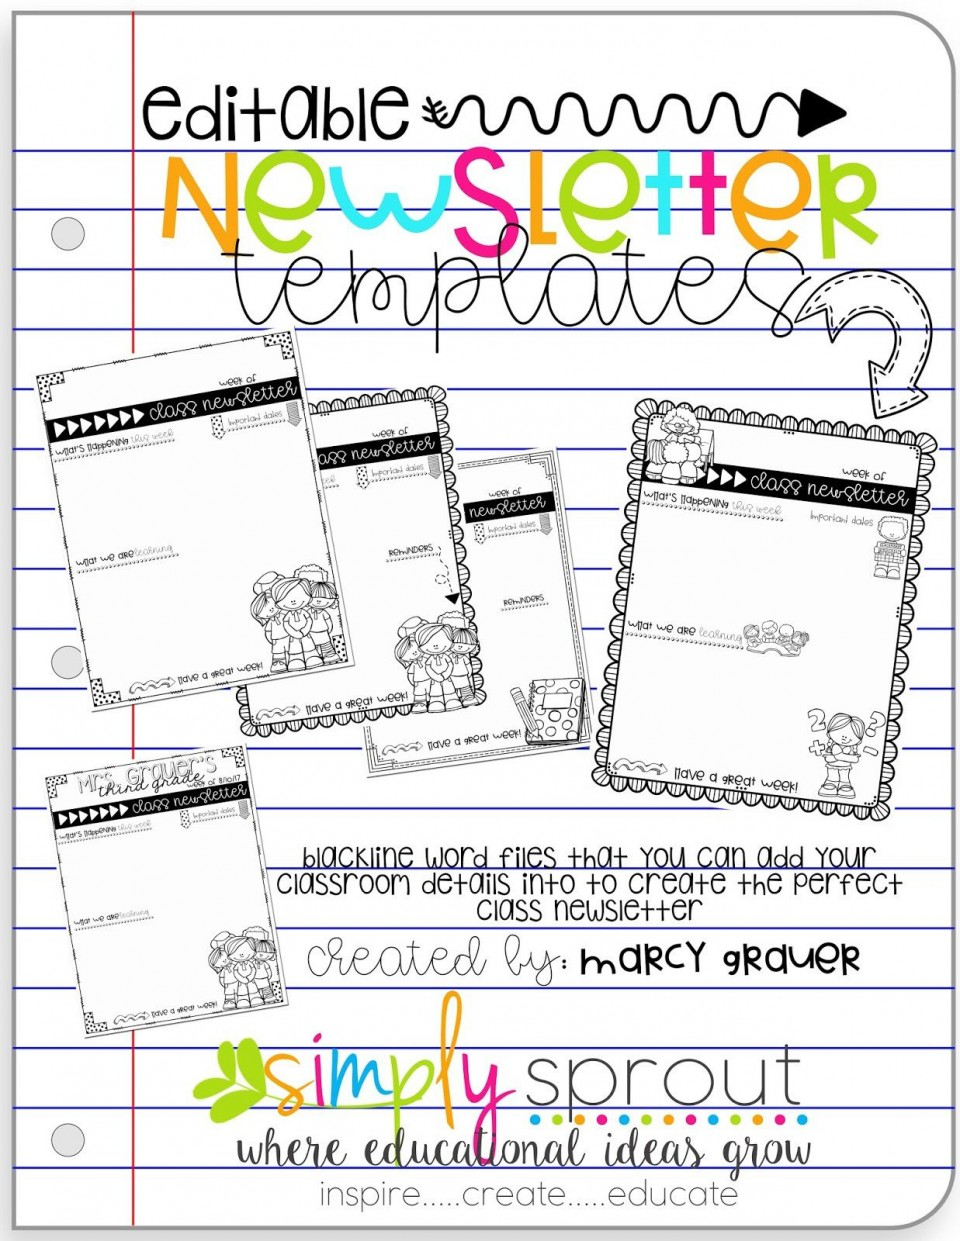 009 Astounding School Newsletter Template Free Image  Word Download Counselor960